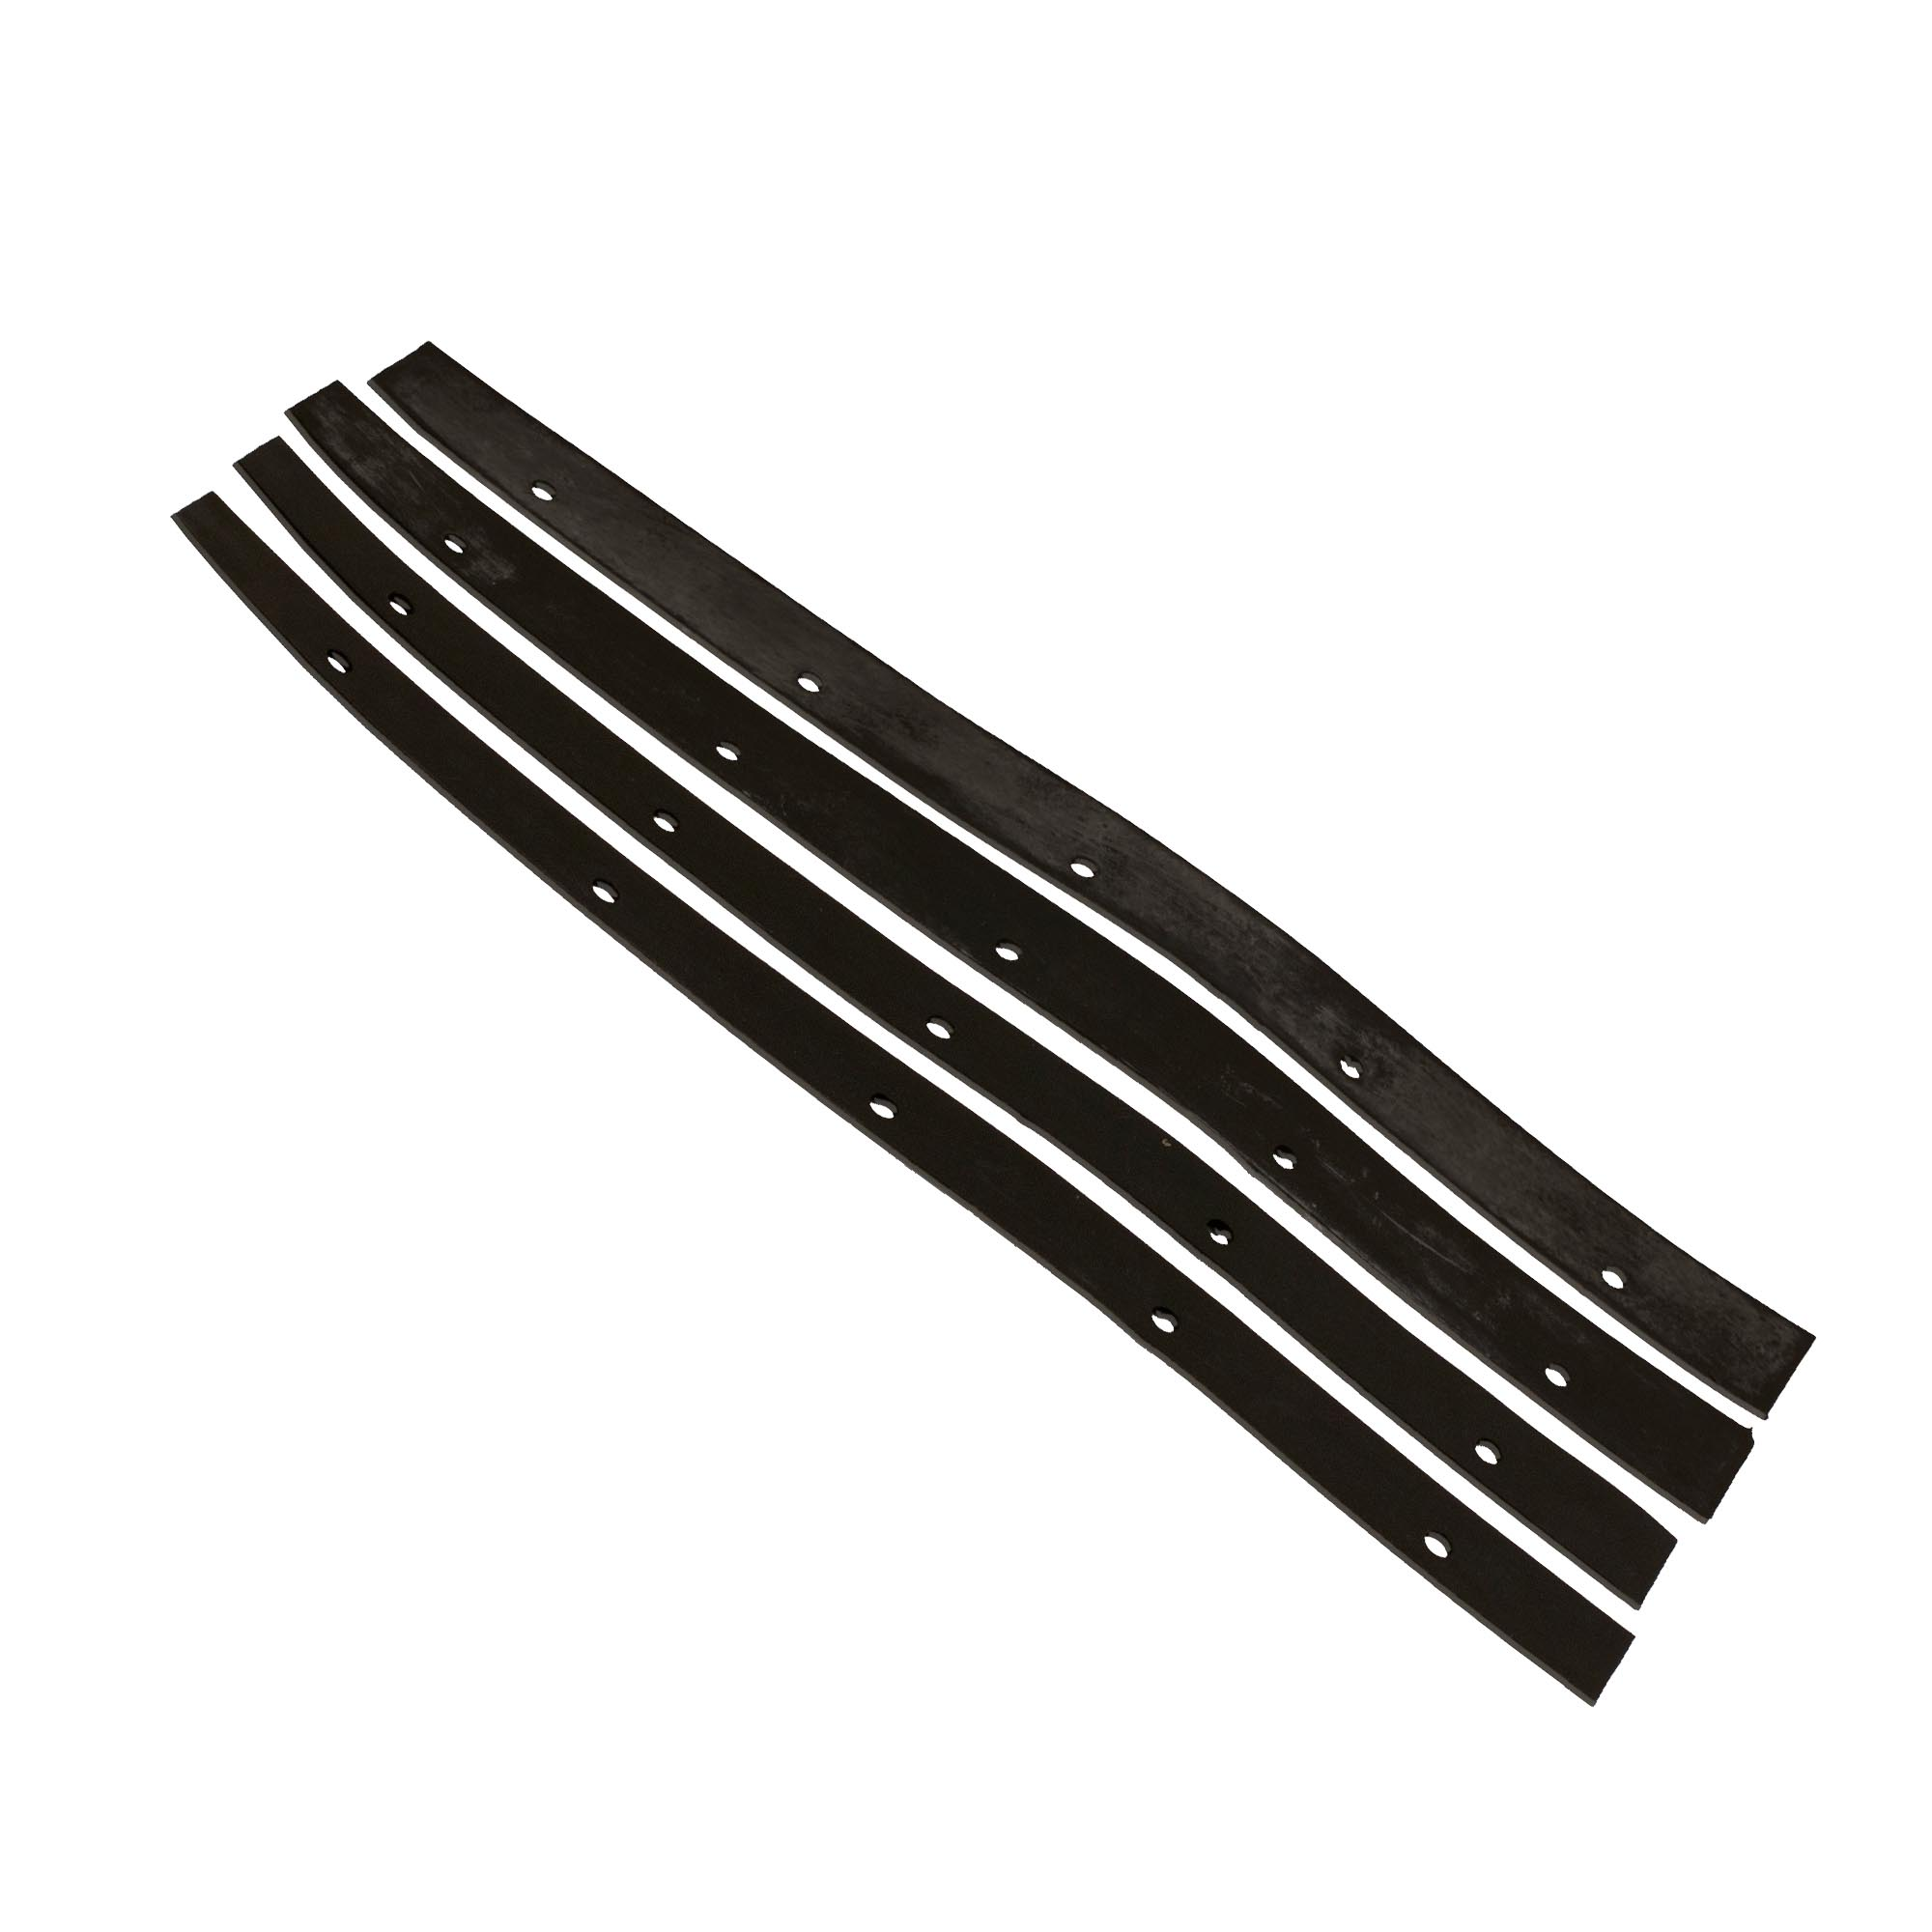 Model 900139 Replacement Squeegee